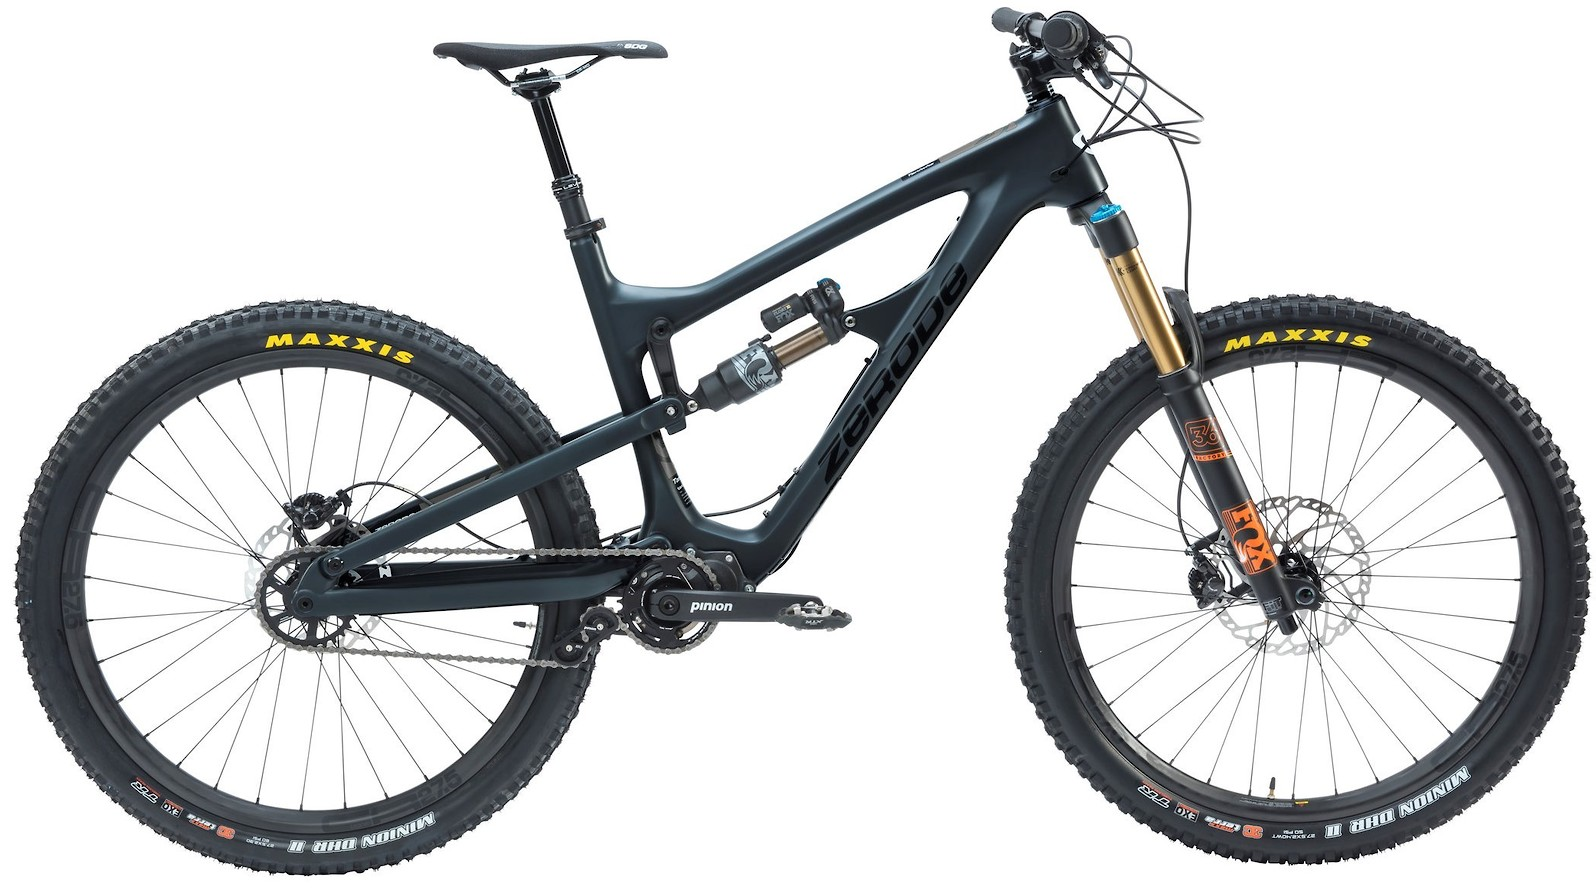 2020 Zerode Taniwha Matte Obsidian (Image does not accurately represent build specs)